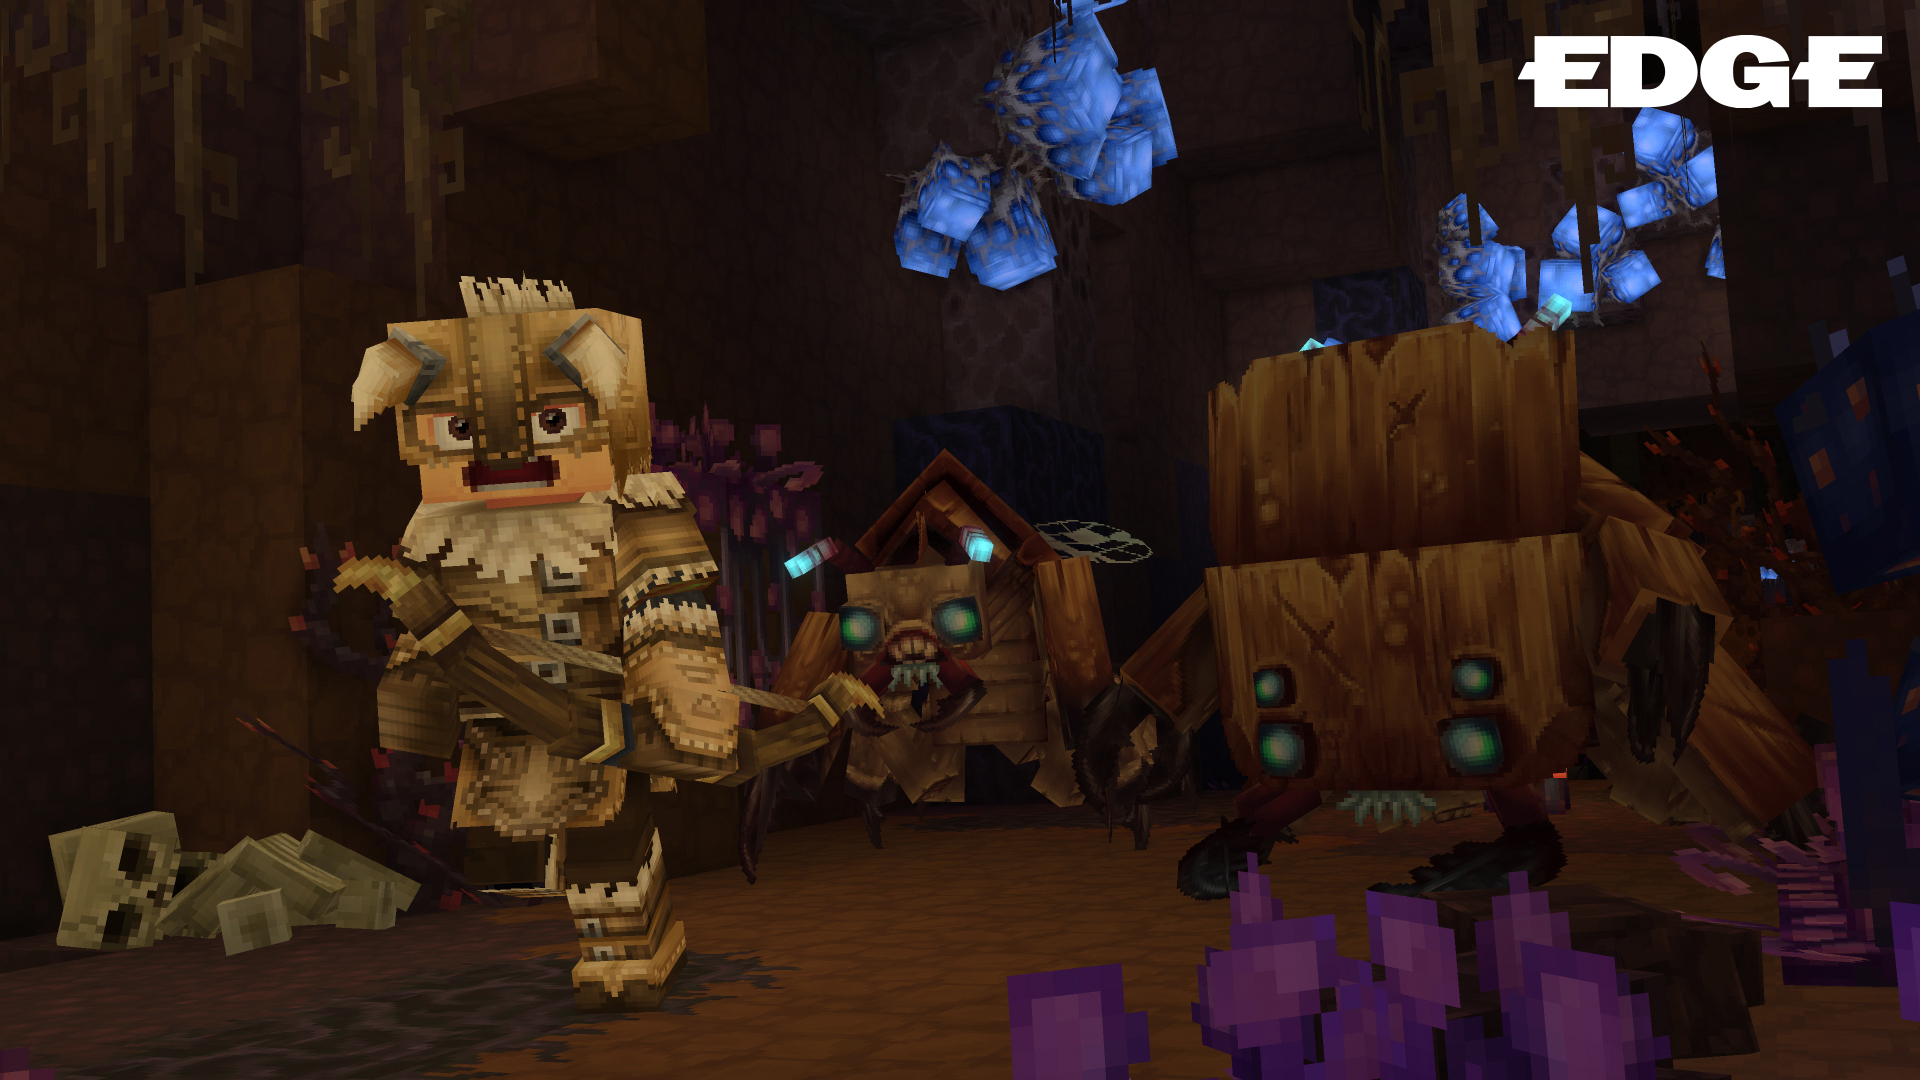 First Look Hytale Is Putting Adventure And Creativity At The Heart Of Its Ambitious Block Building Sandbox Gamesradar